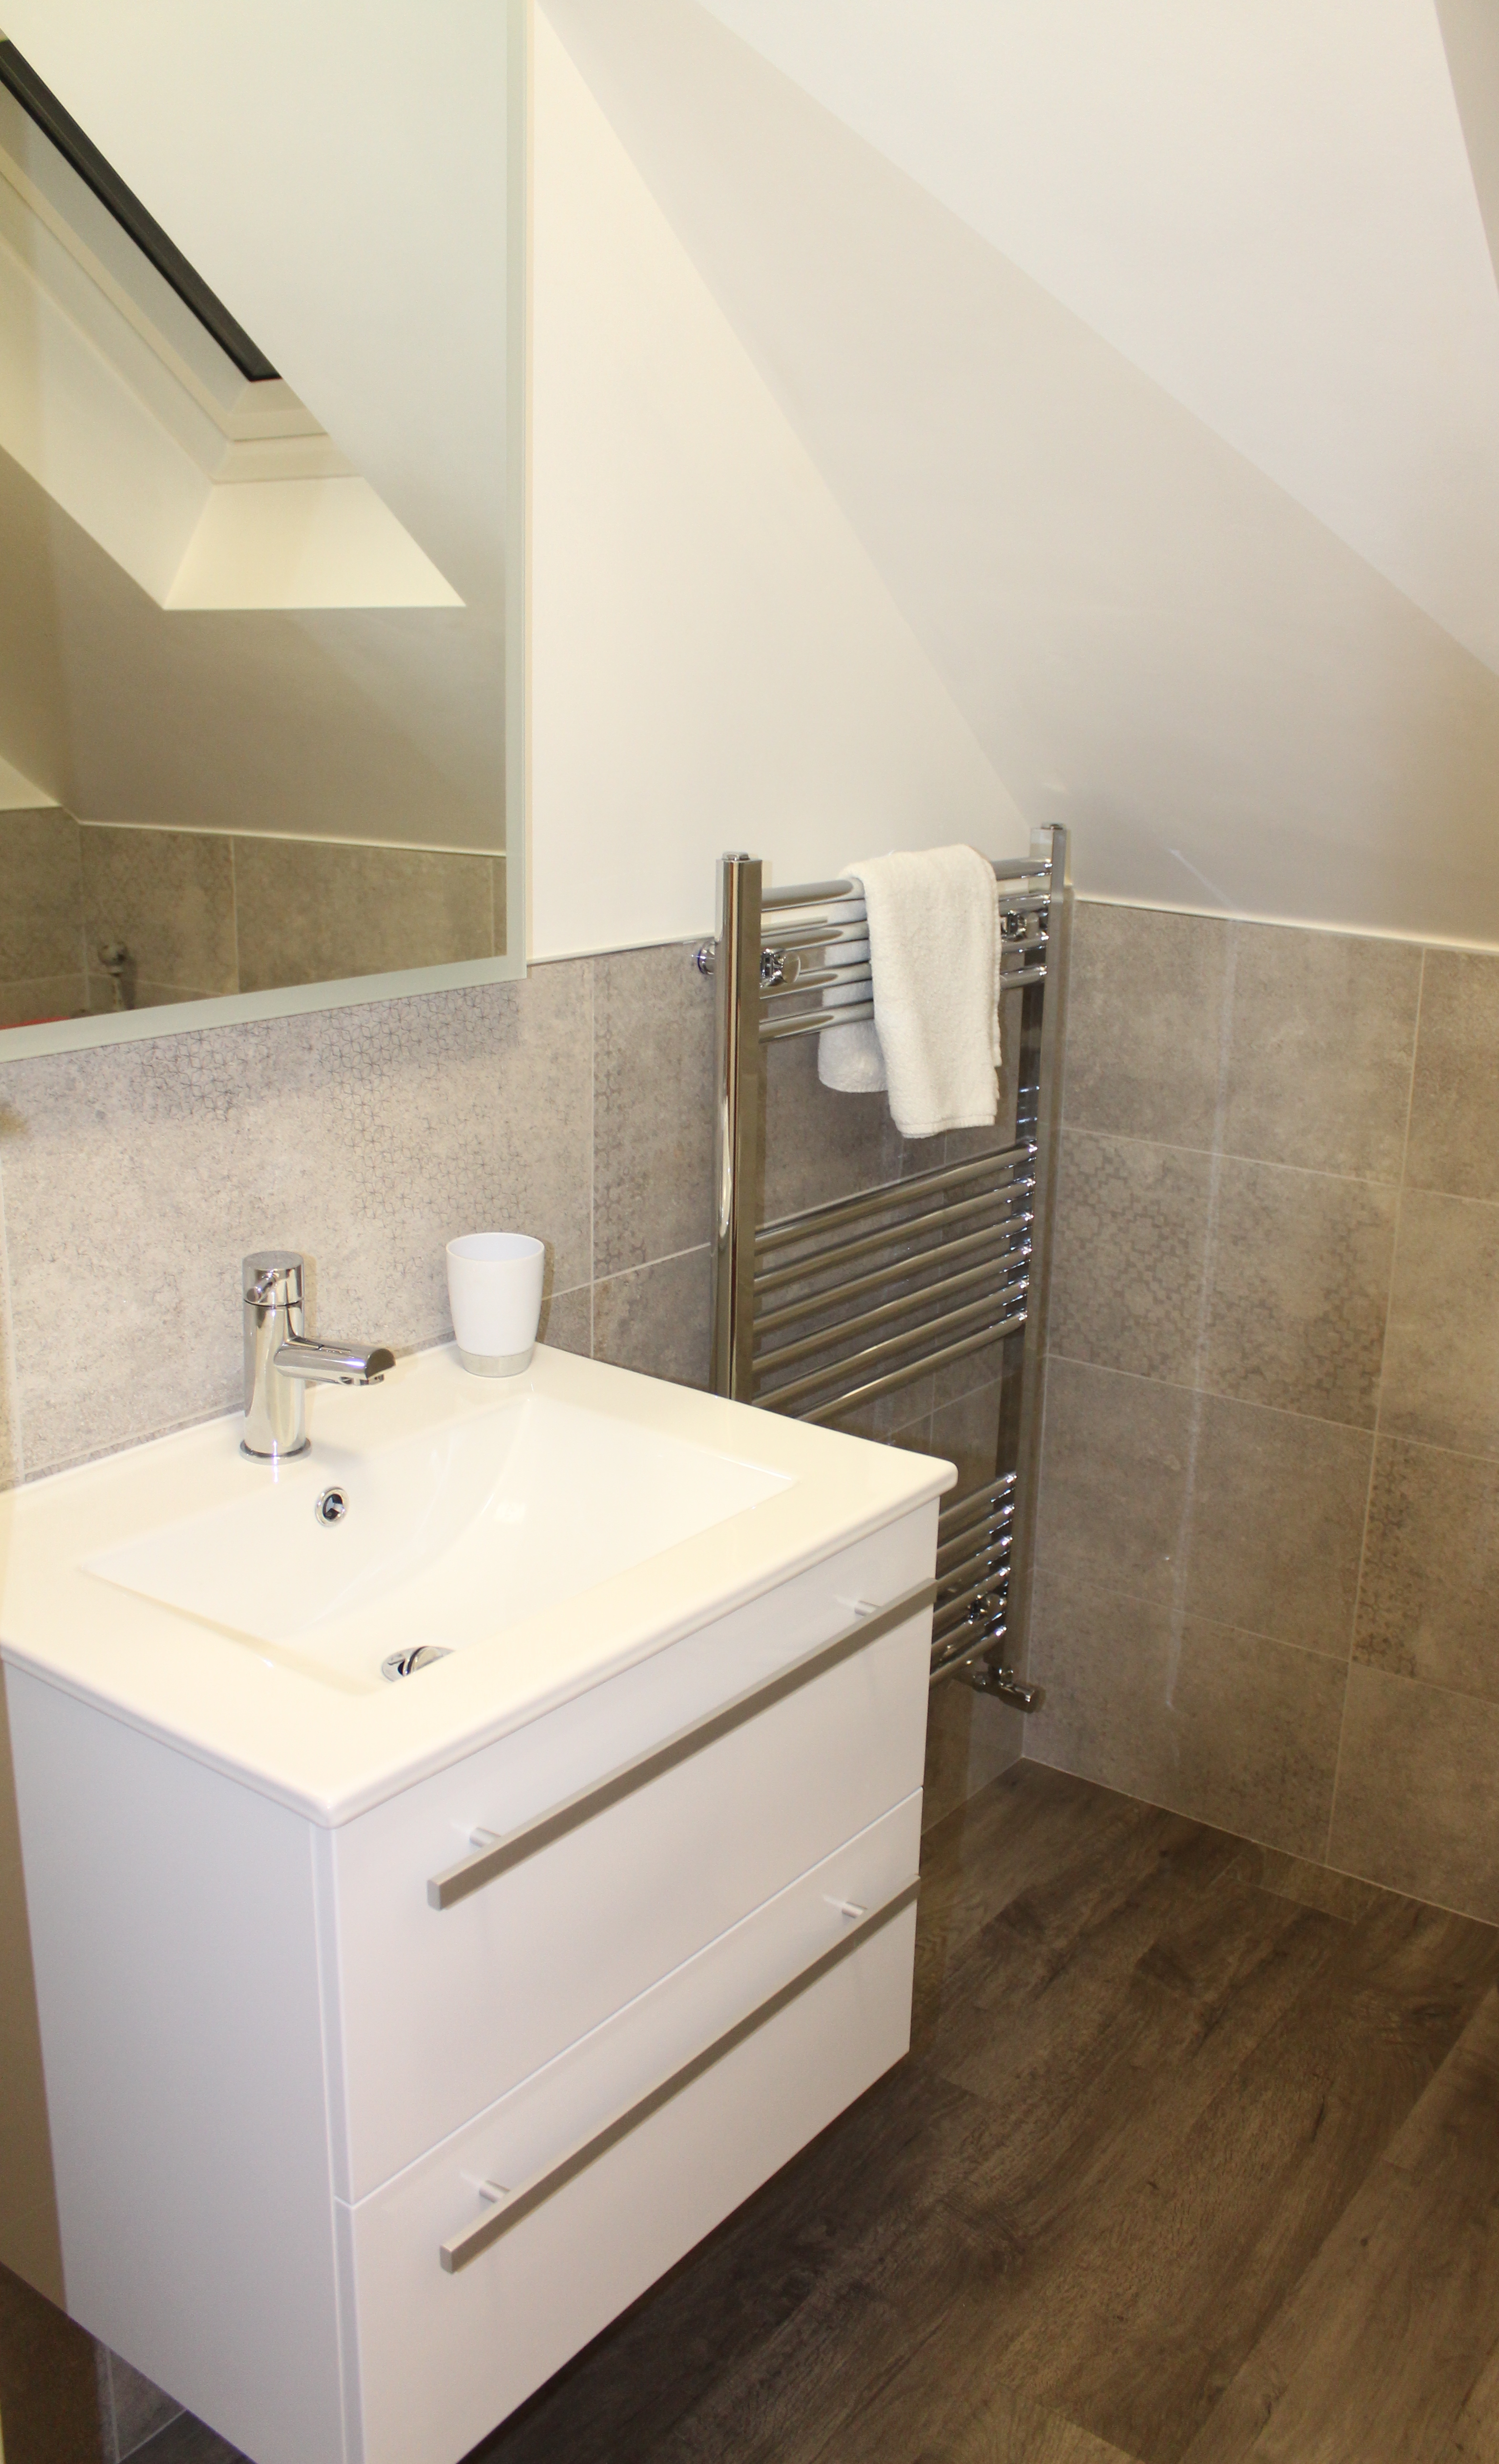 Lodge 1 Sink and towel rail